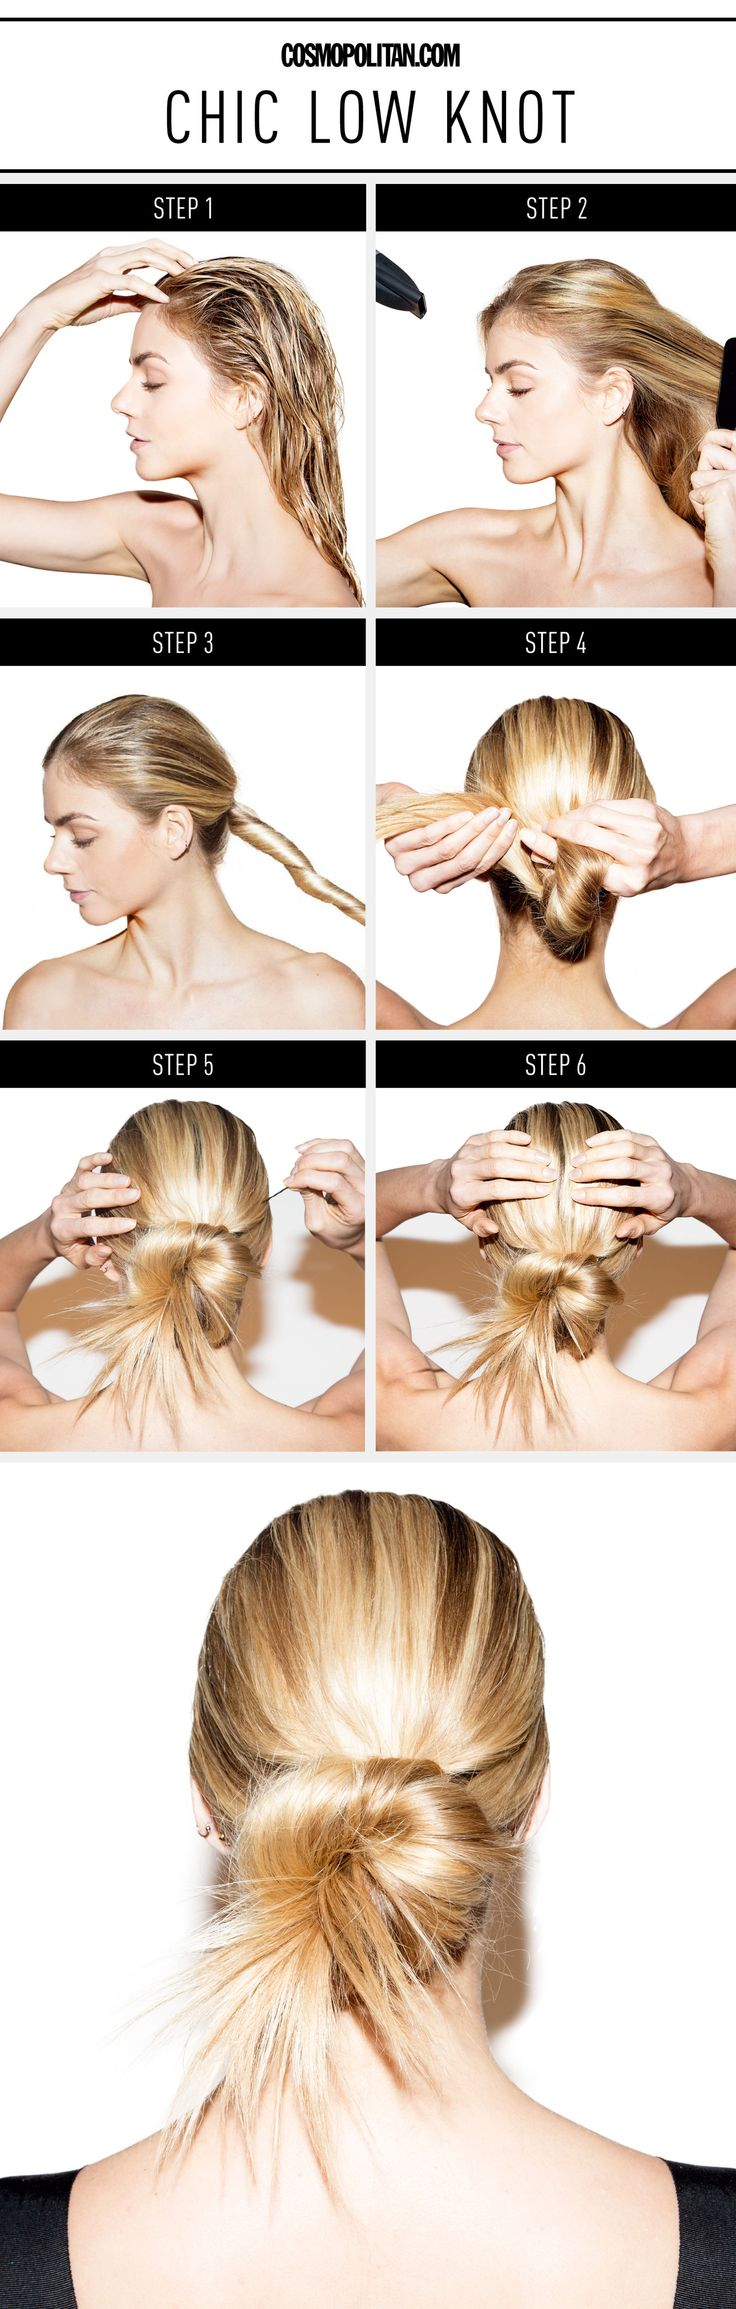 The Messy Top Knot Is Dead—Here's What to Wear Instead | Pinterest | Hair style, Makeup and Hair inspiration